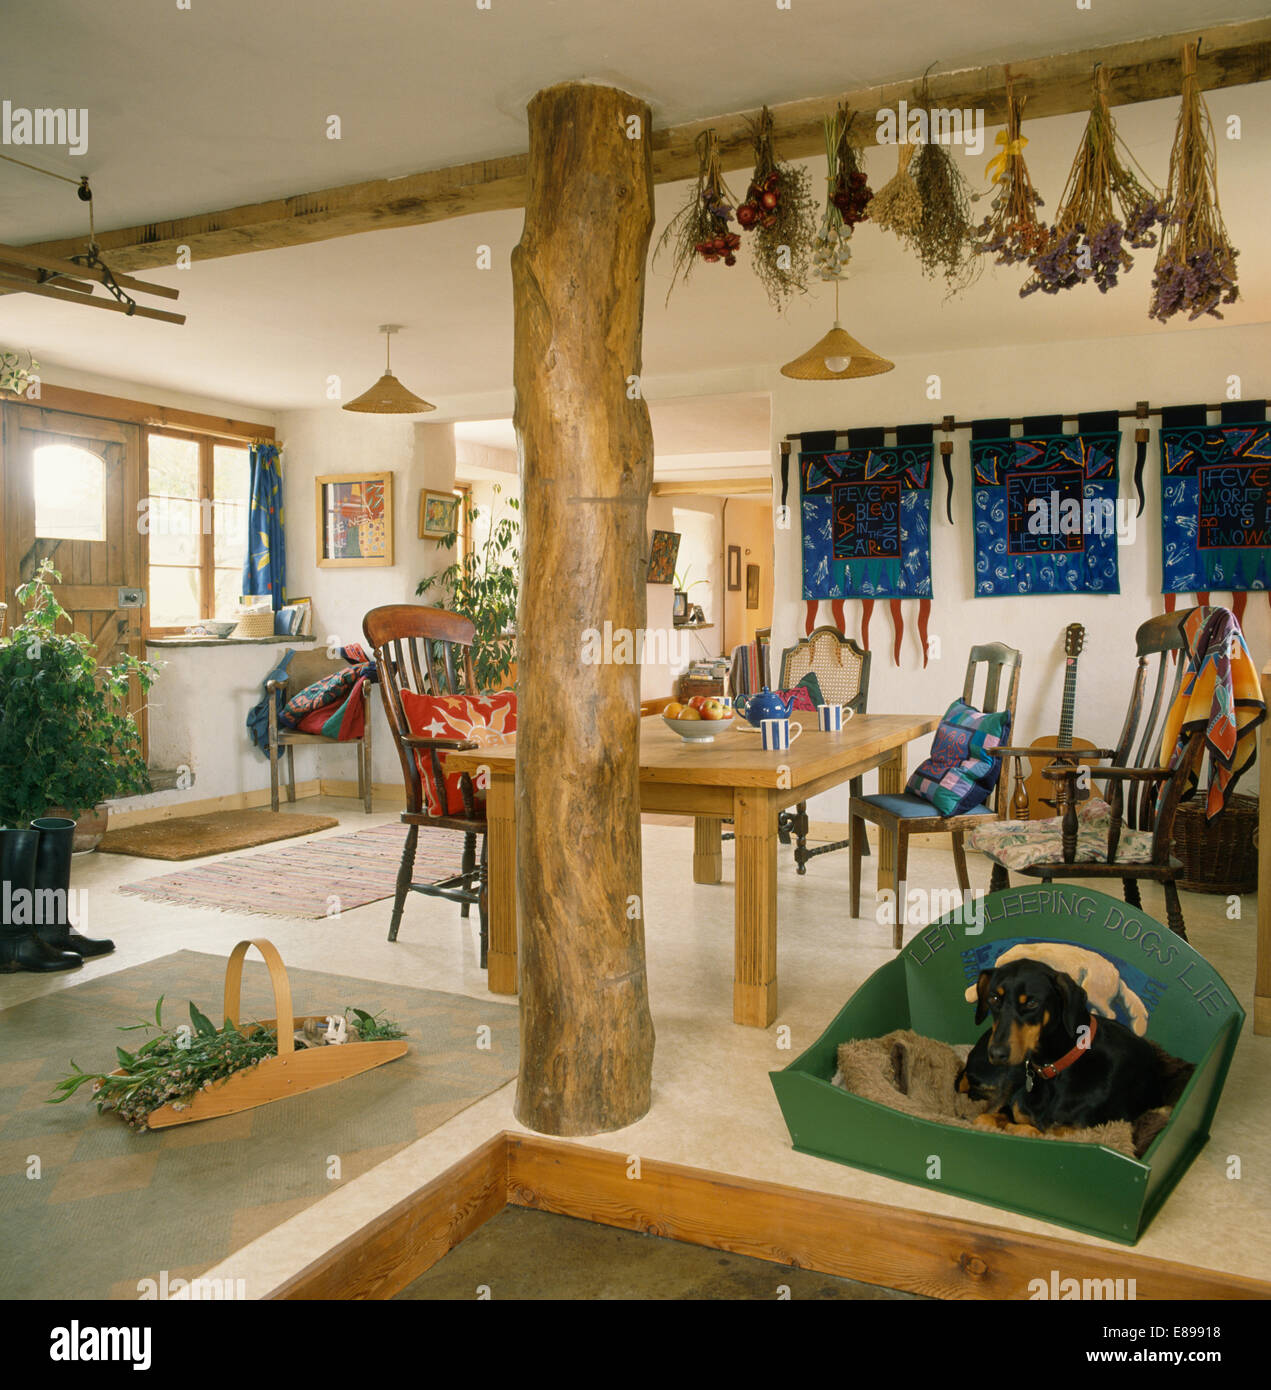 Rustic upright beam in eighties cottage dining room with dog in basket - Stock Image